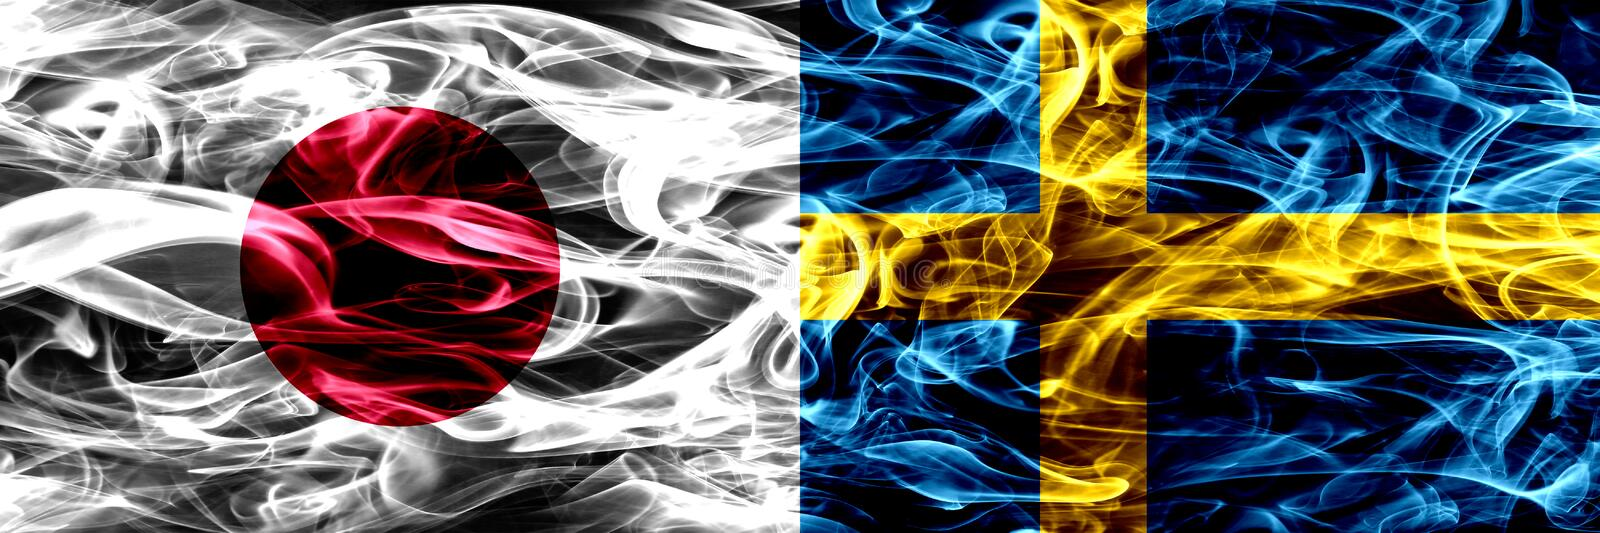 Japan vs Sweden, Swedish smoke flags placed side by side. stock image